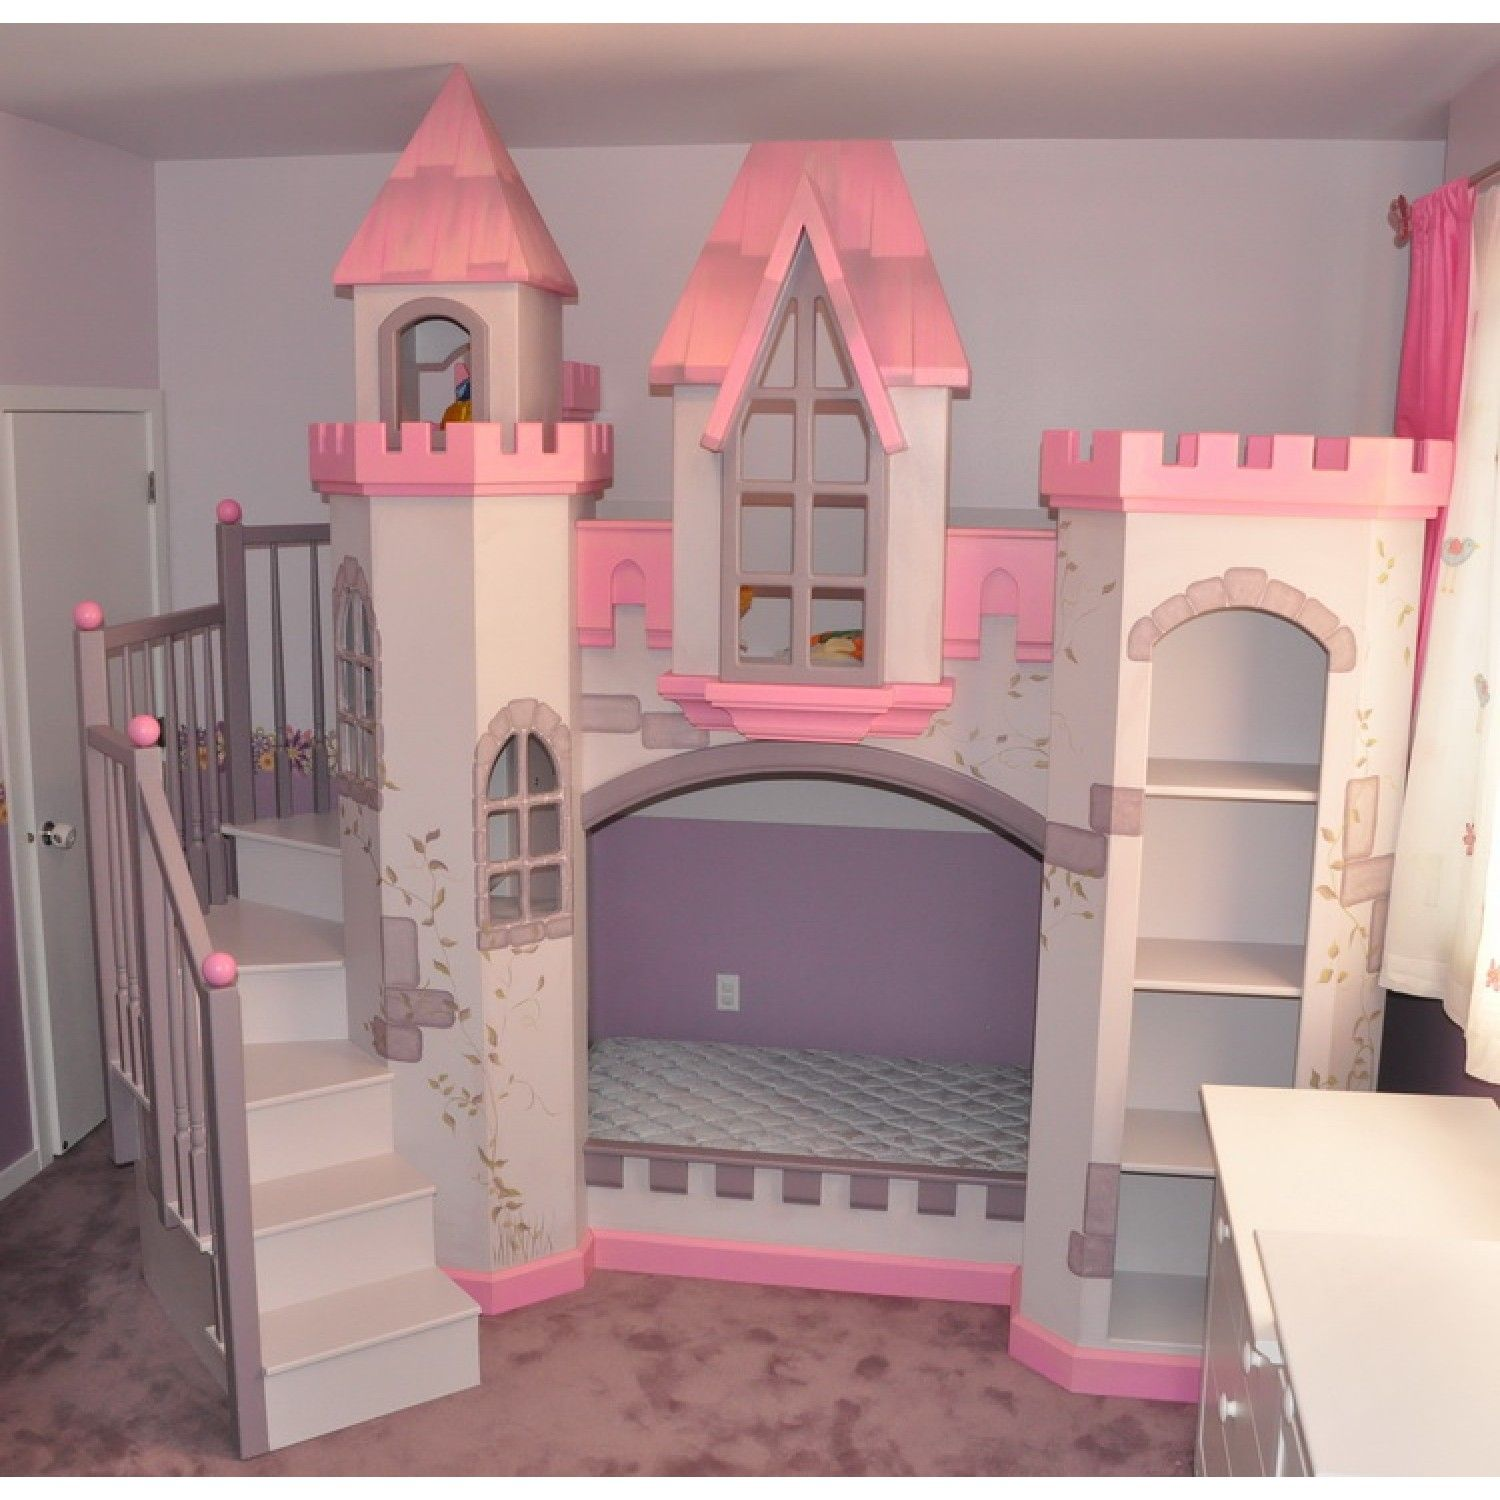 Bunk beds you have to see to believe Kid beds, Princess